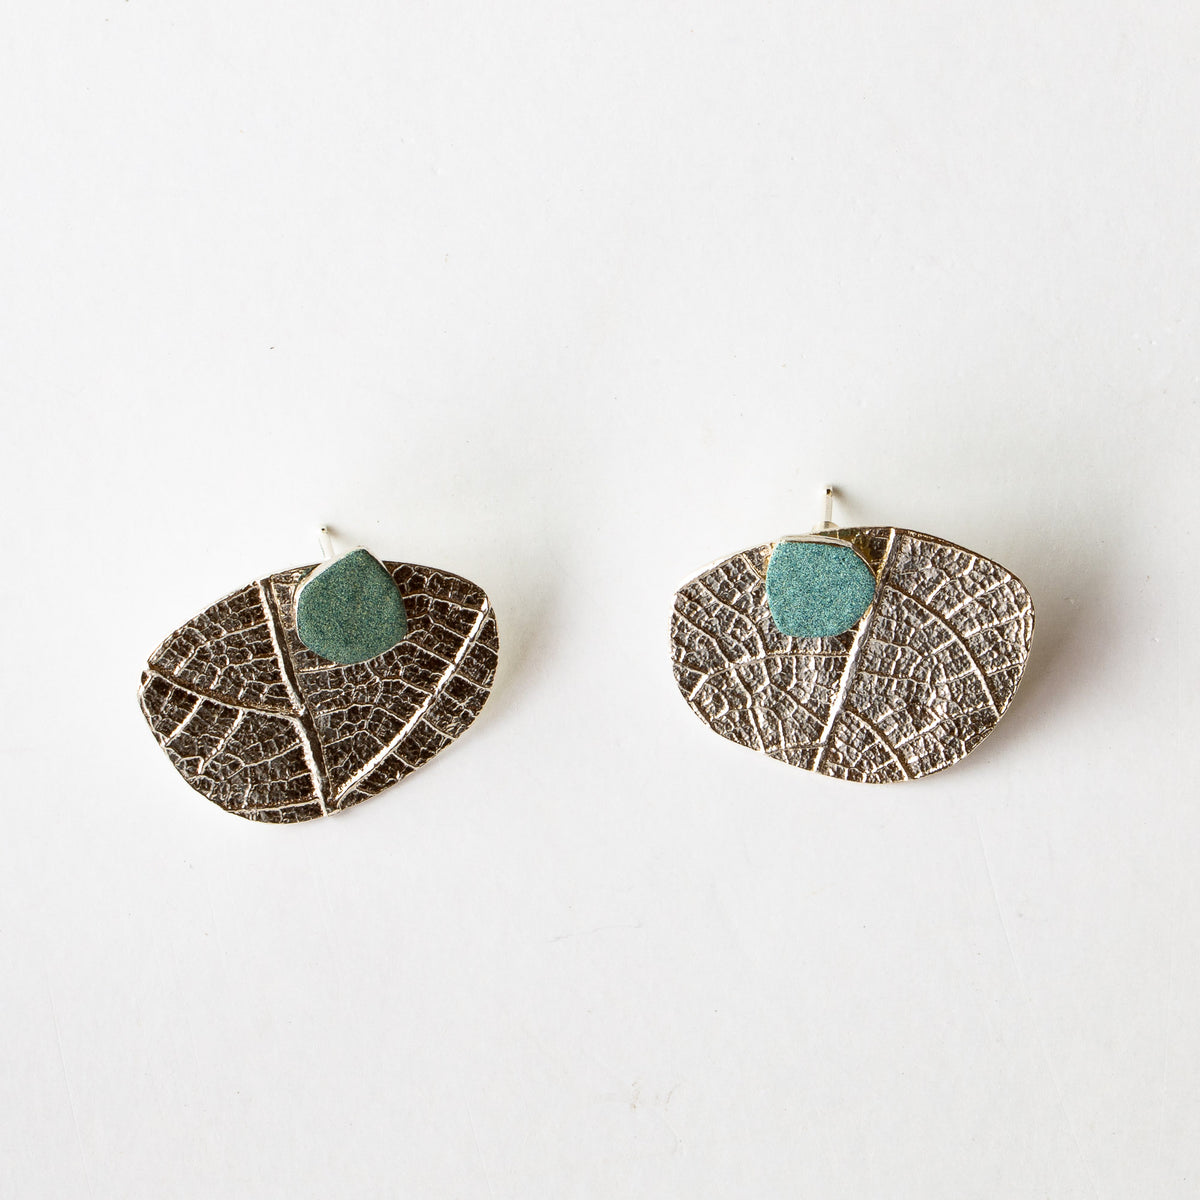 Silver & Turquoise Color Ear Jacket Earrings - Sold by Chic & Basta